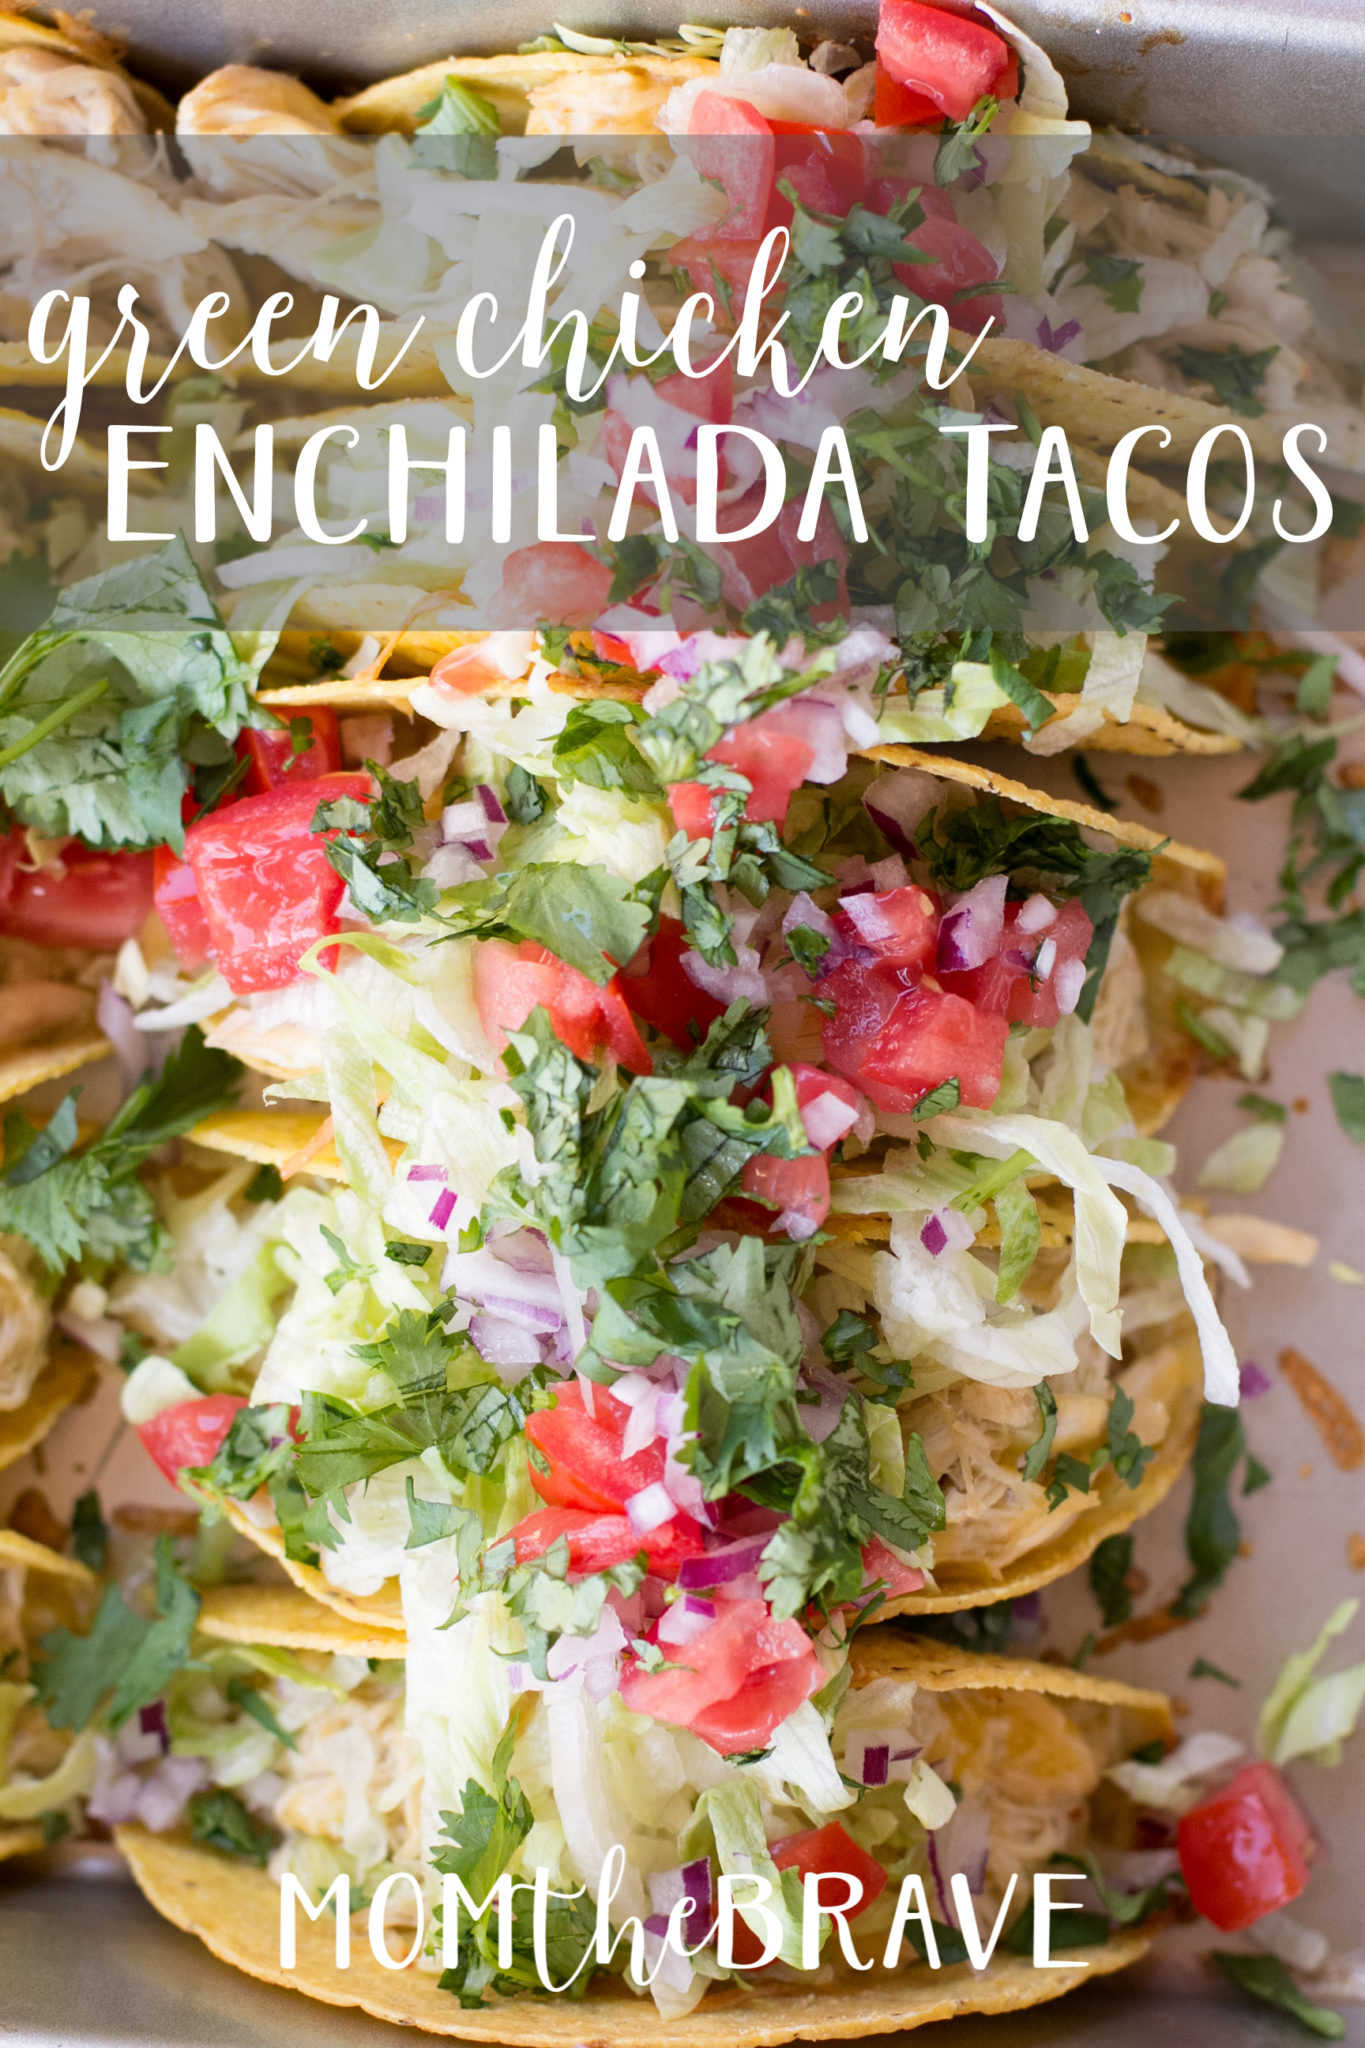 Green Chicken Enchilada Tacos